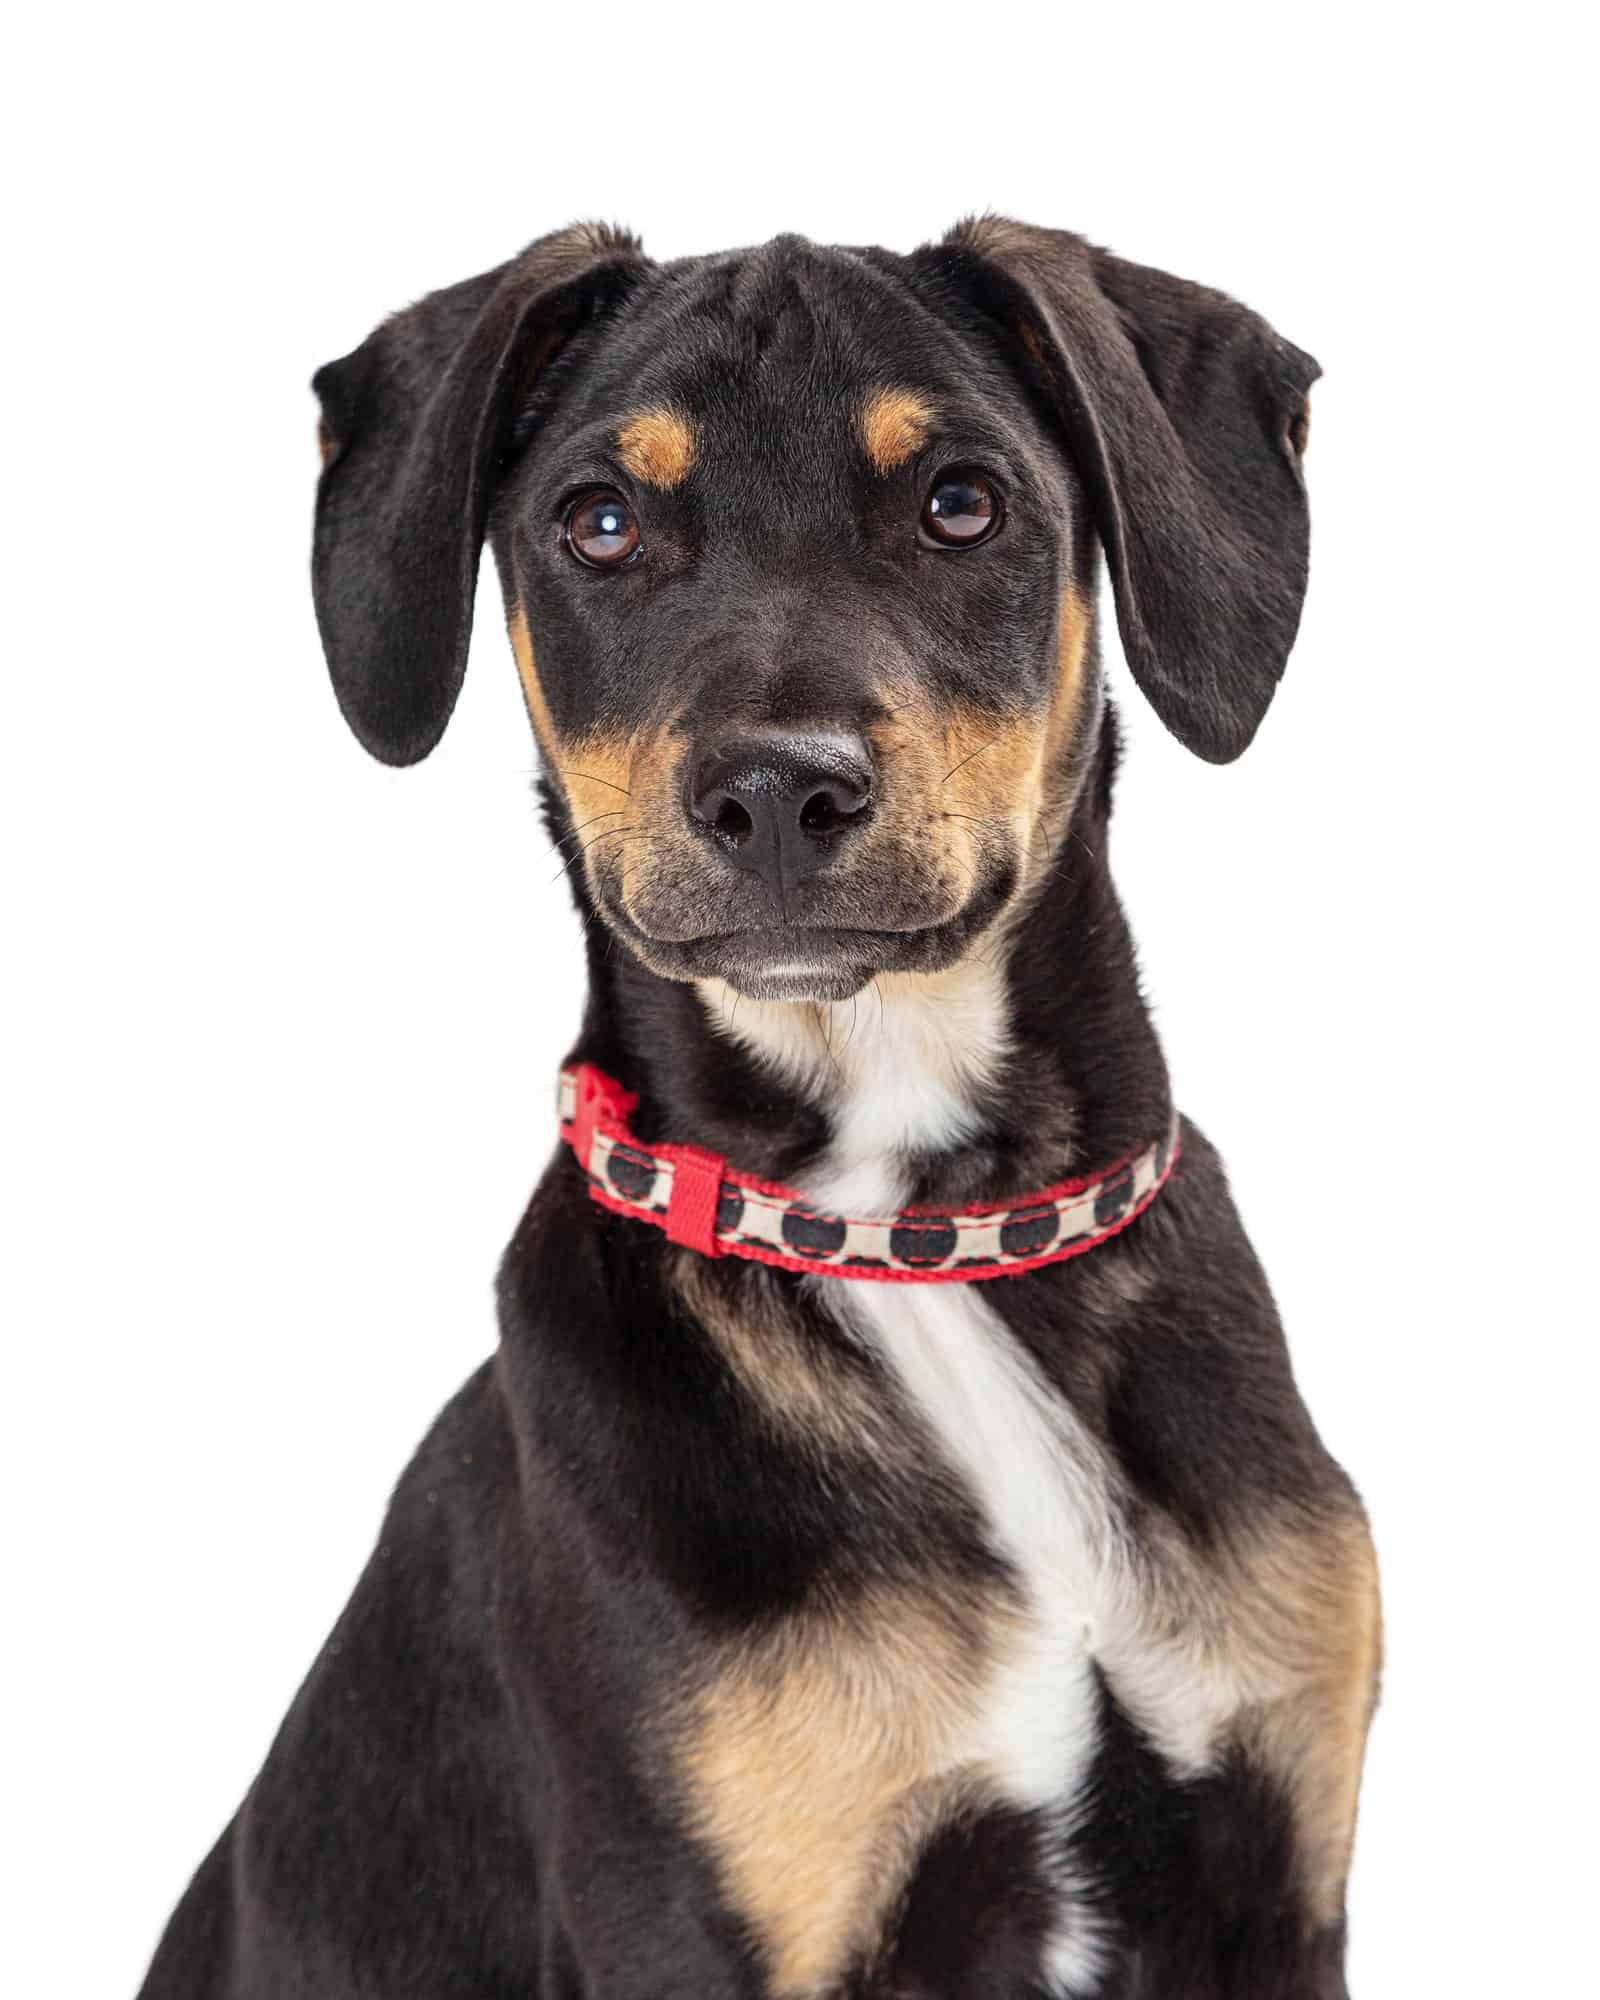 Doberman Pinscher Beagle Mix